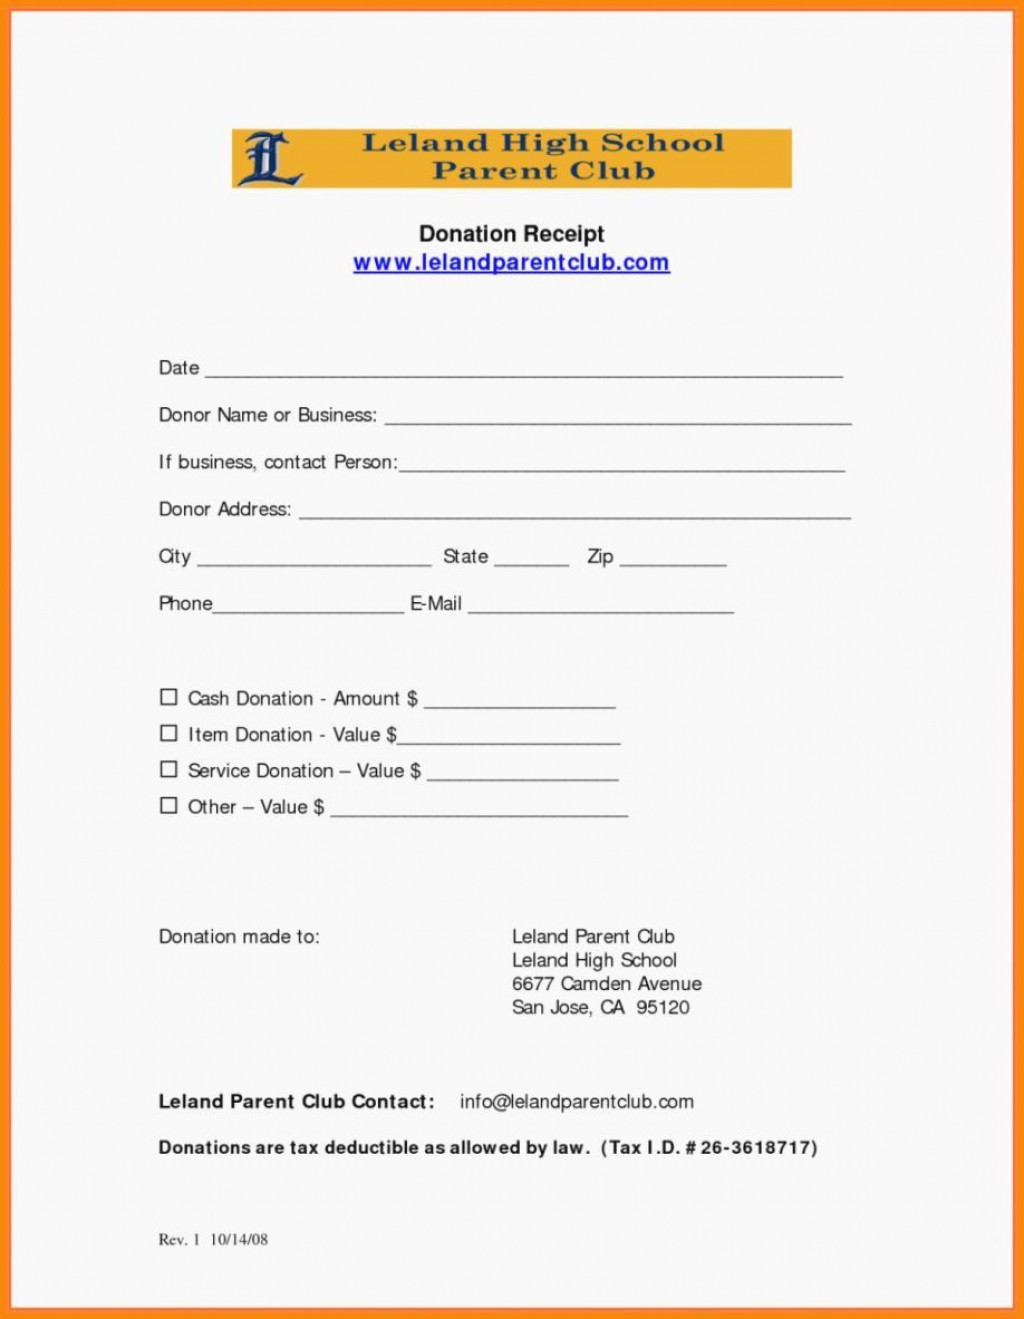 001 Beautiful Tax Deductible Donation Receipt Printable High Resolution Large